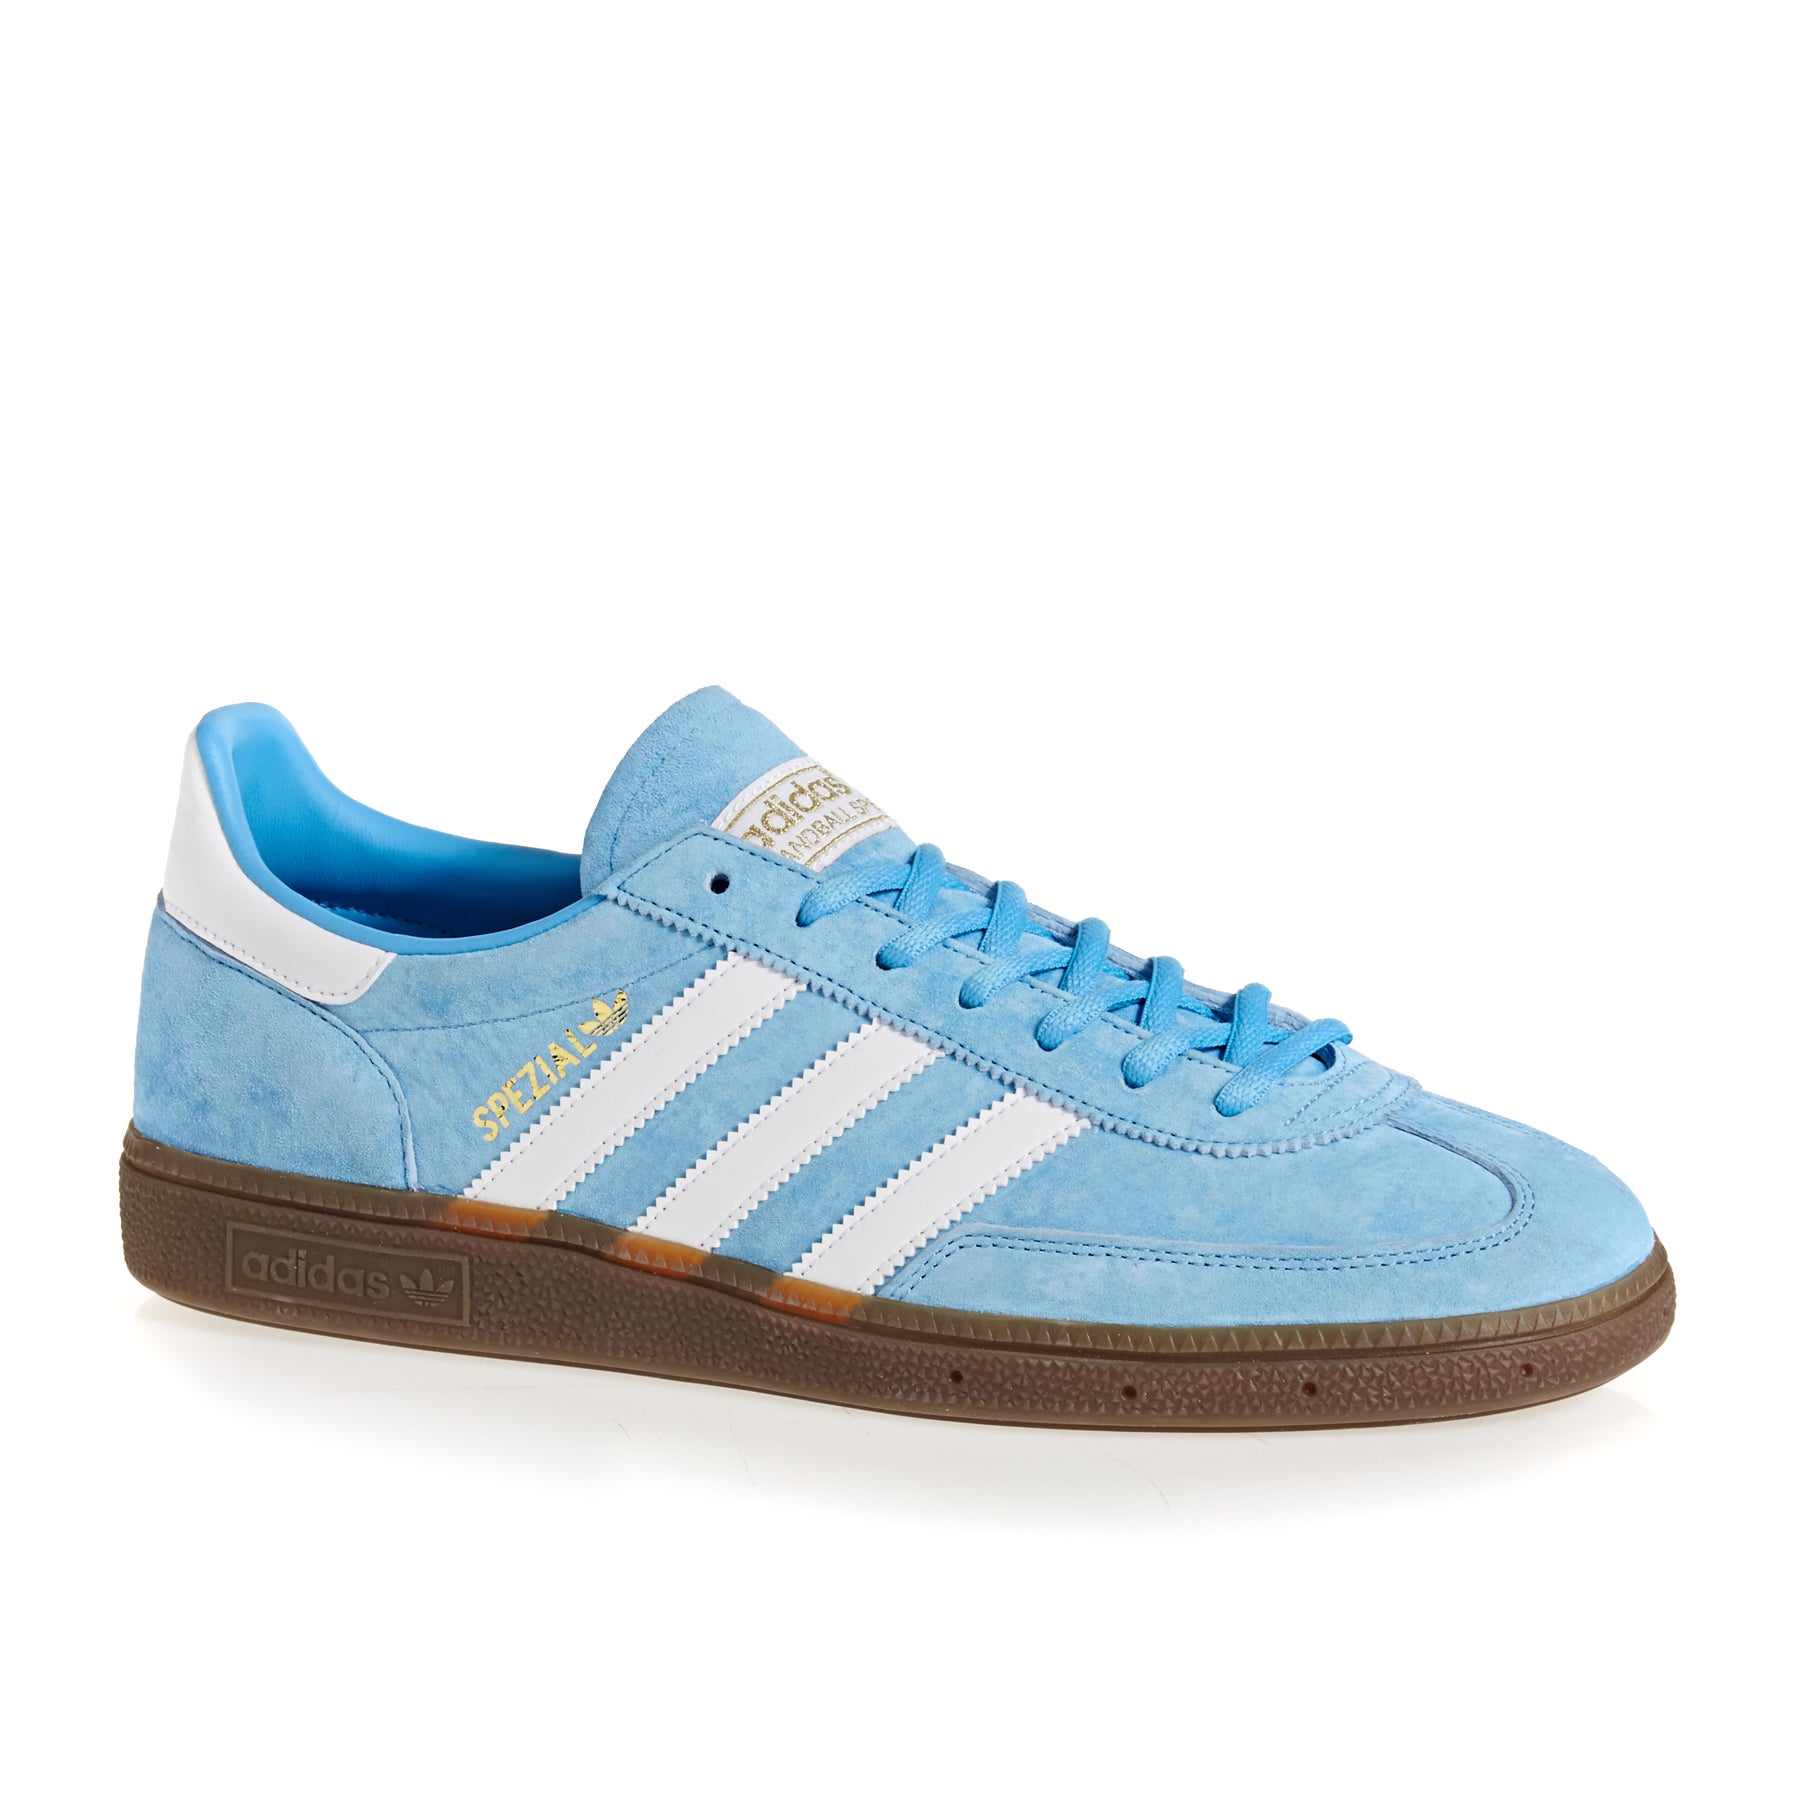 Adidas Originals Handball Spezial Shoes - Light Blue White Gum